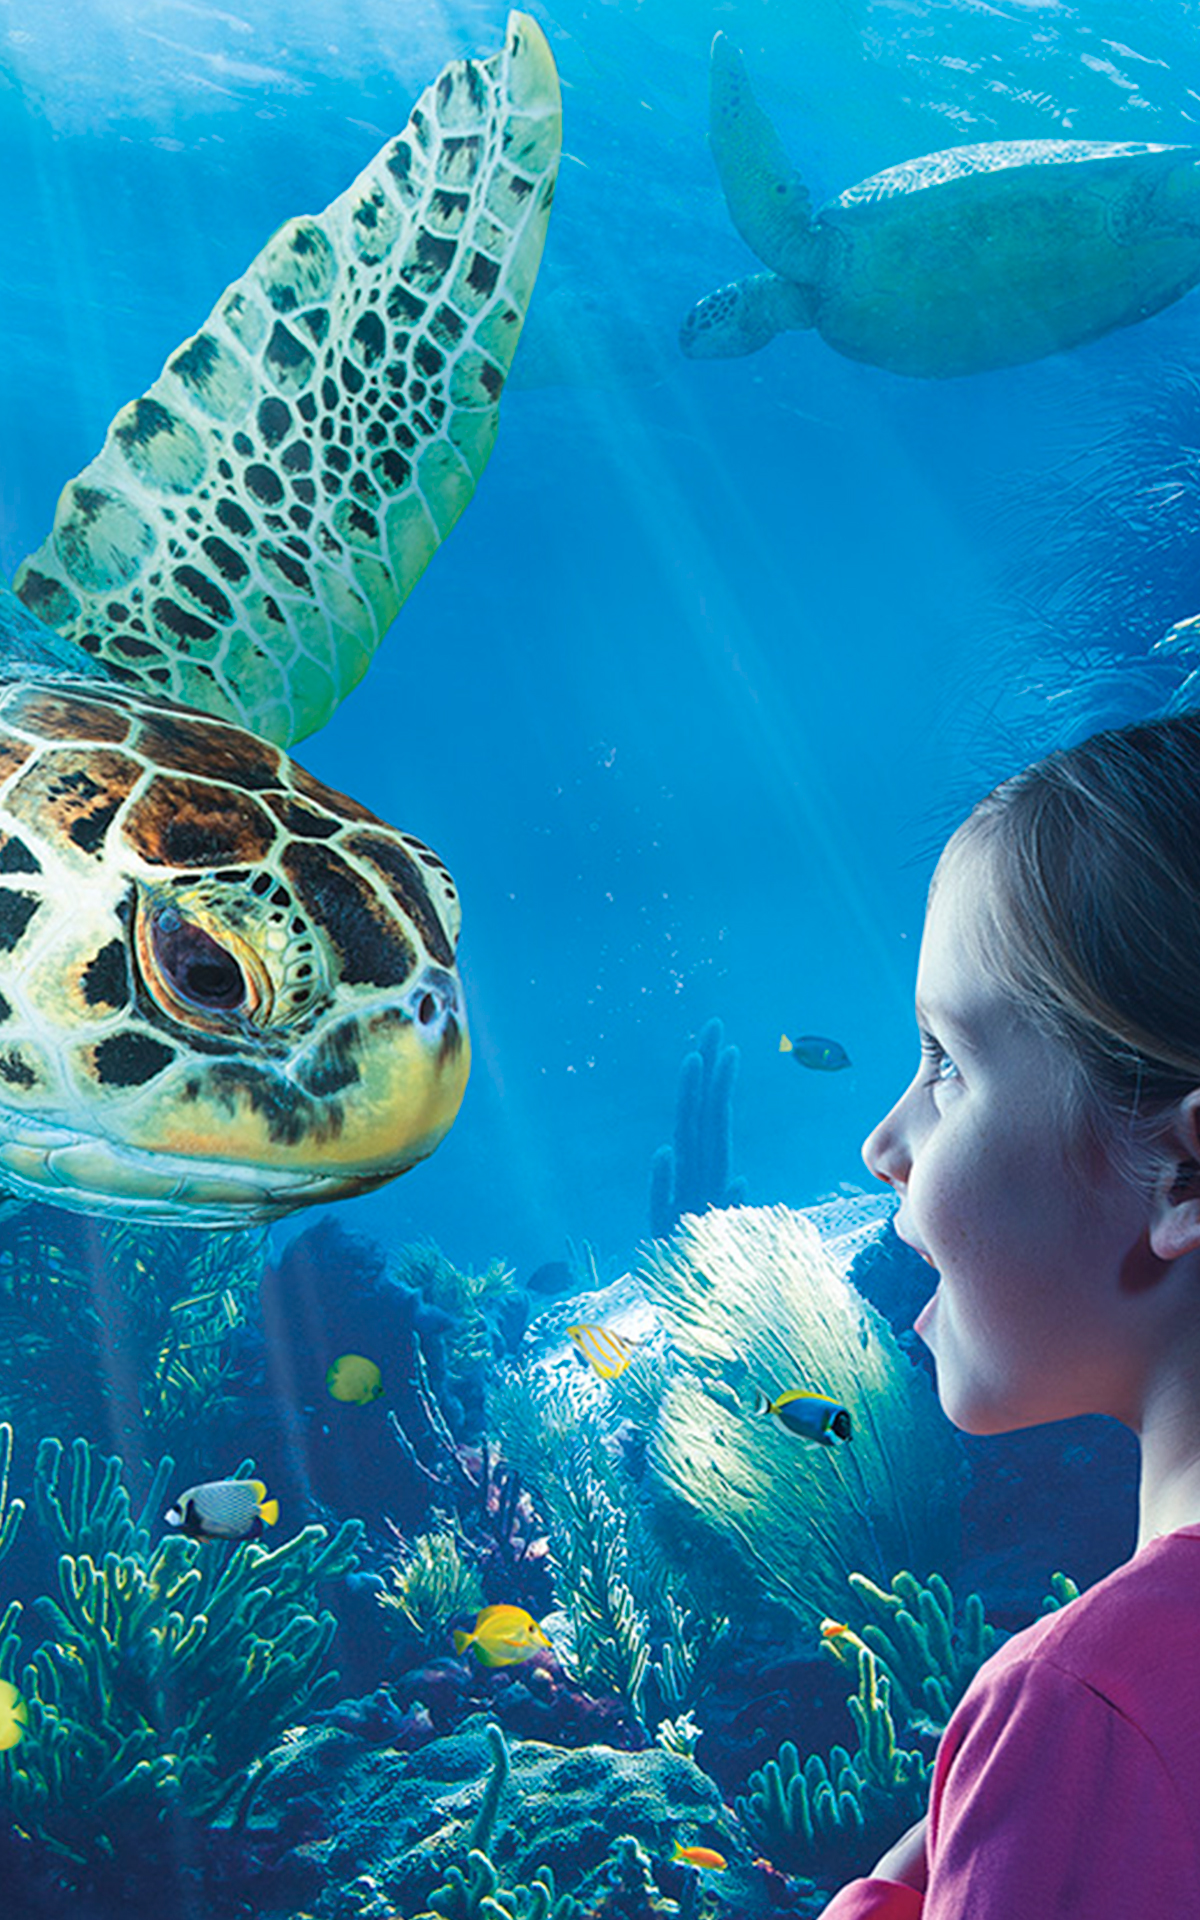 Aquarium Sea Life Attraction Image